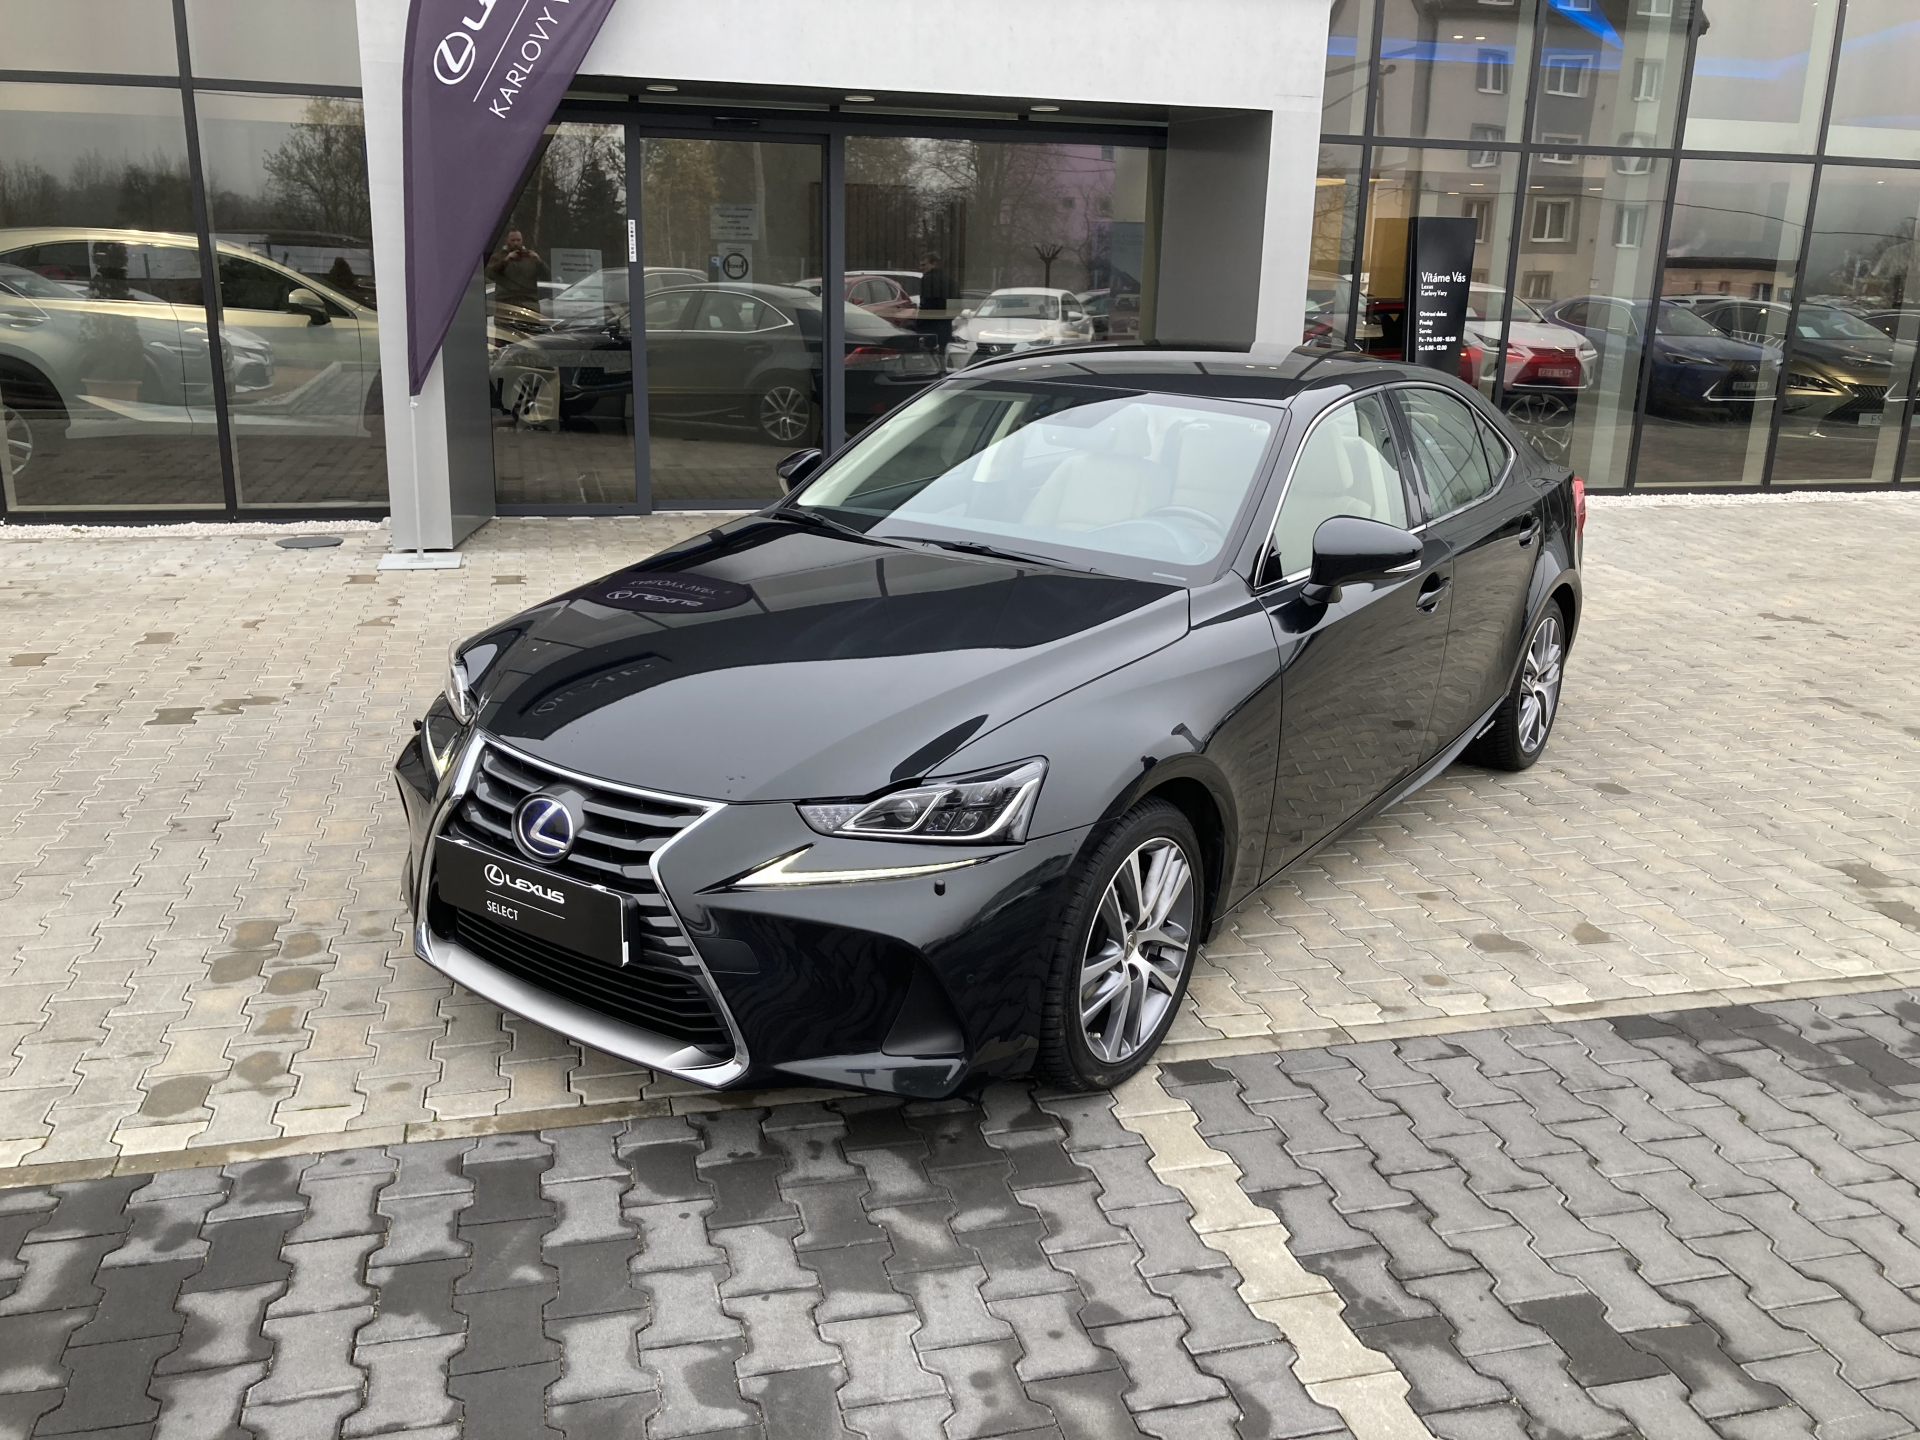 Lexus IS 300h 2,5 L Petrol Hybrid (223 k) EXECUTIVE NAVI aut. e-CVT